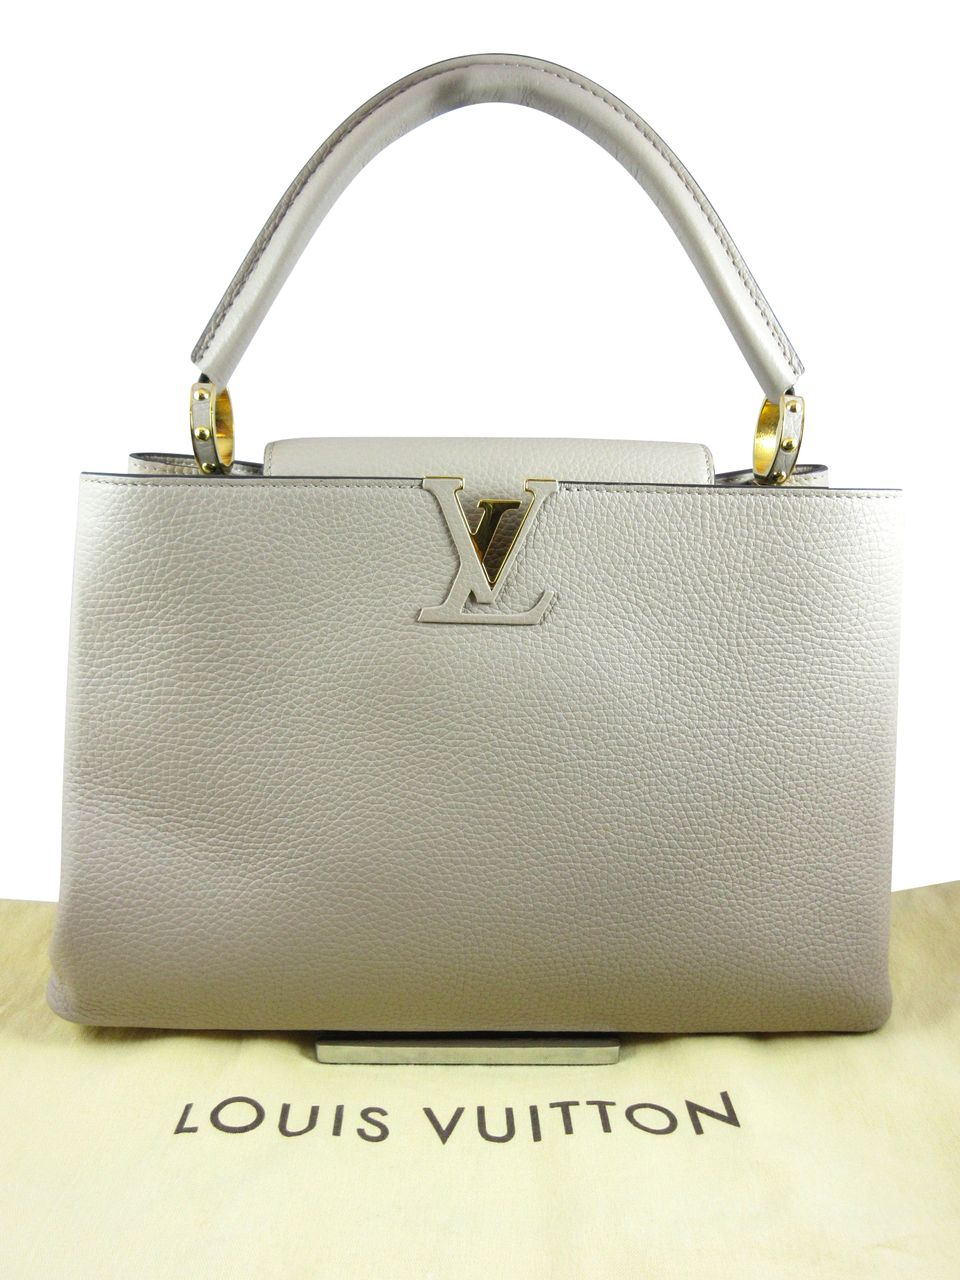 7d25e87aae Louis Vuitton Capucines MM Taurillon Leather Bag (P1) - Keeks Buy + Sell Designer  Handbags